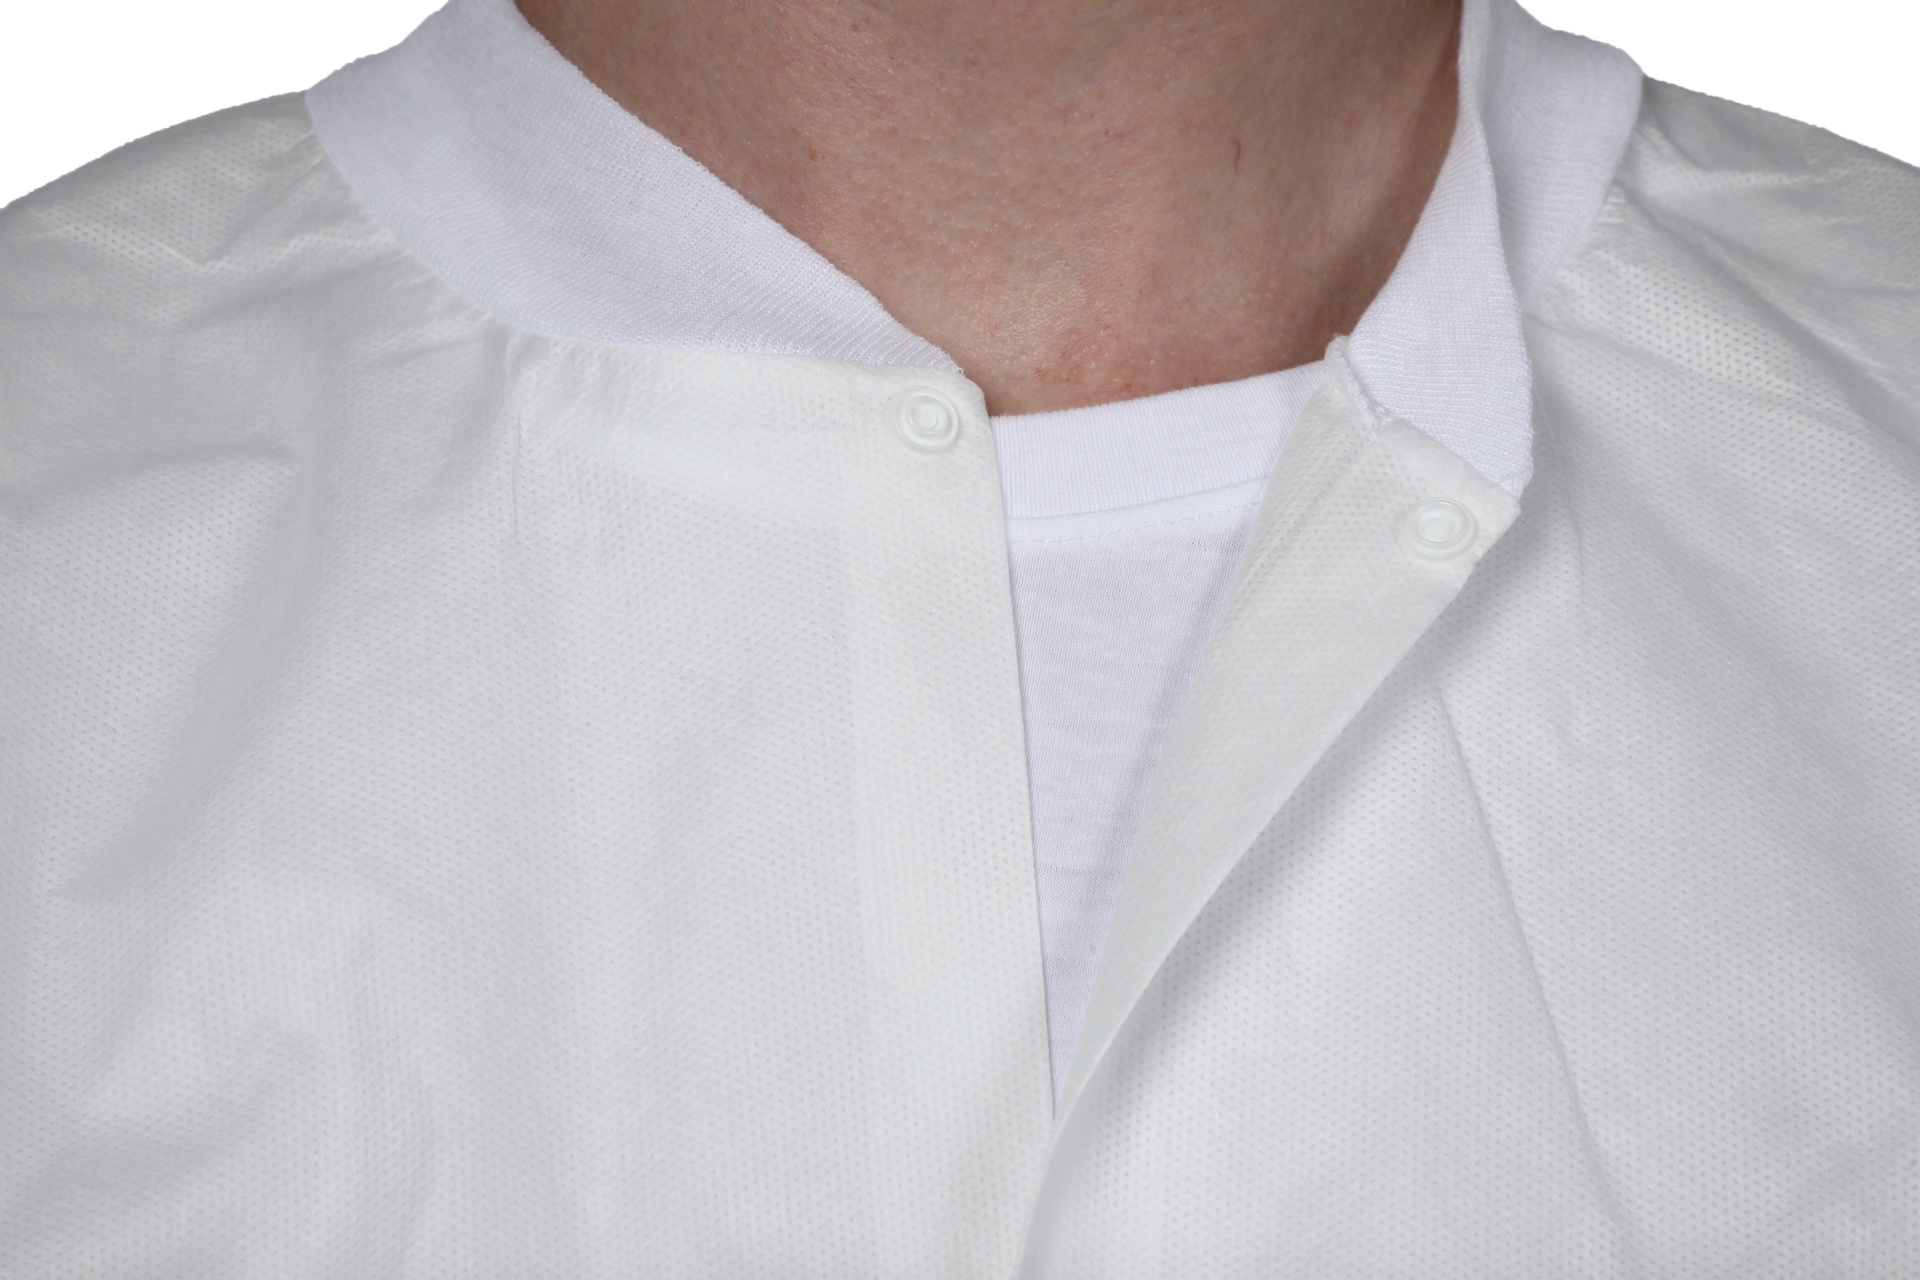 Lab Protective Gowns